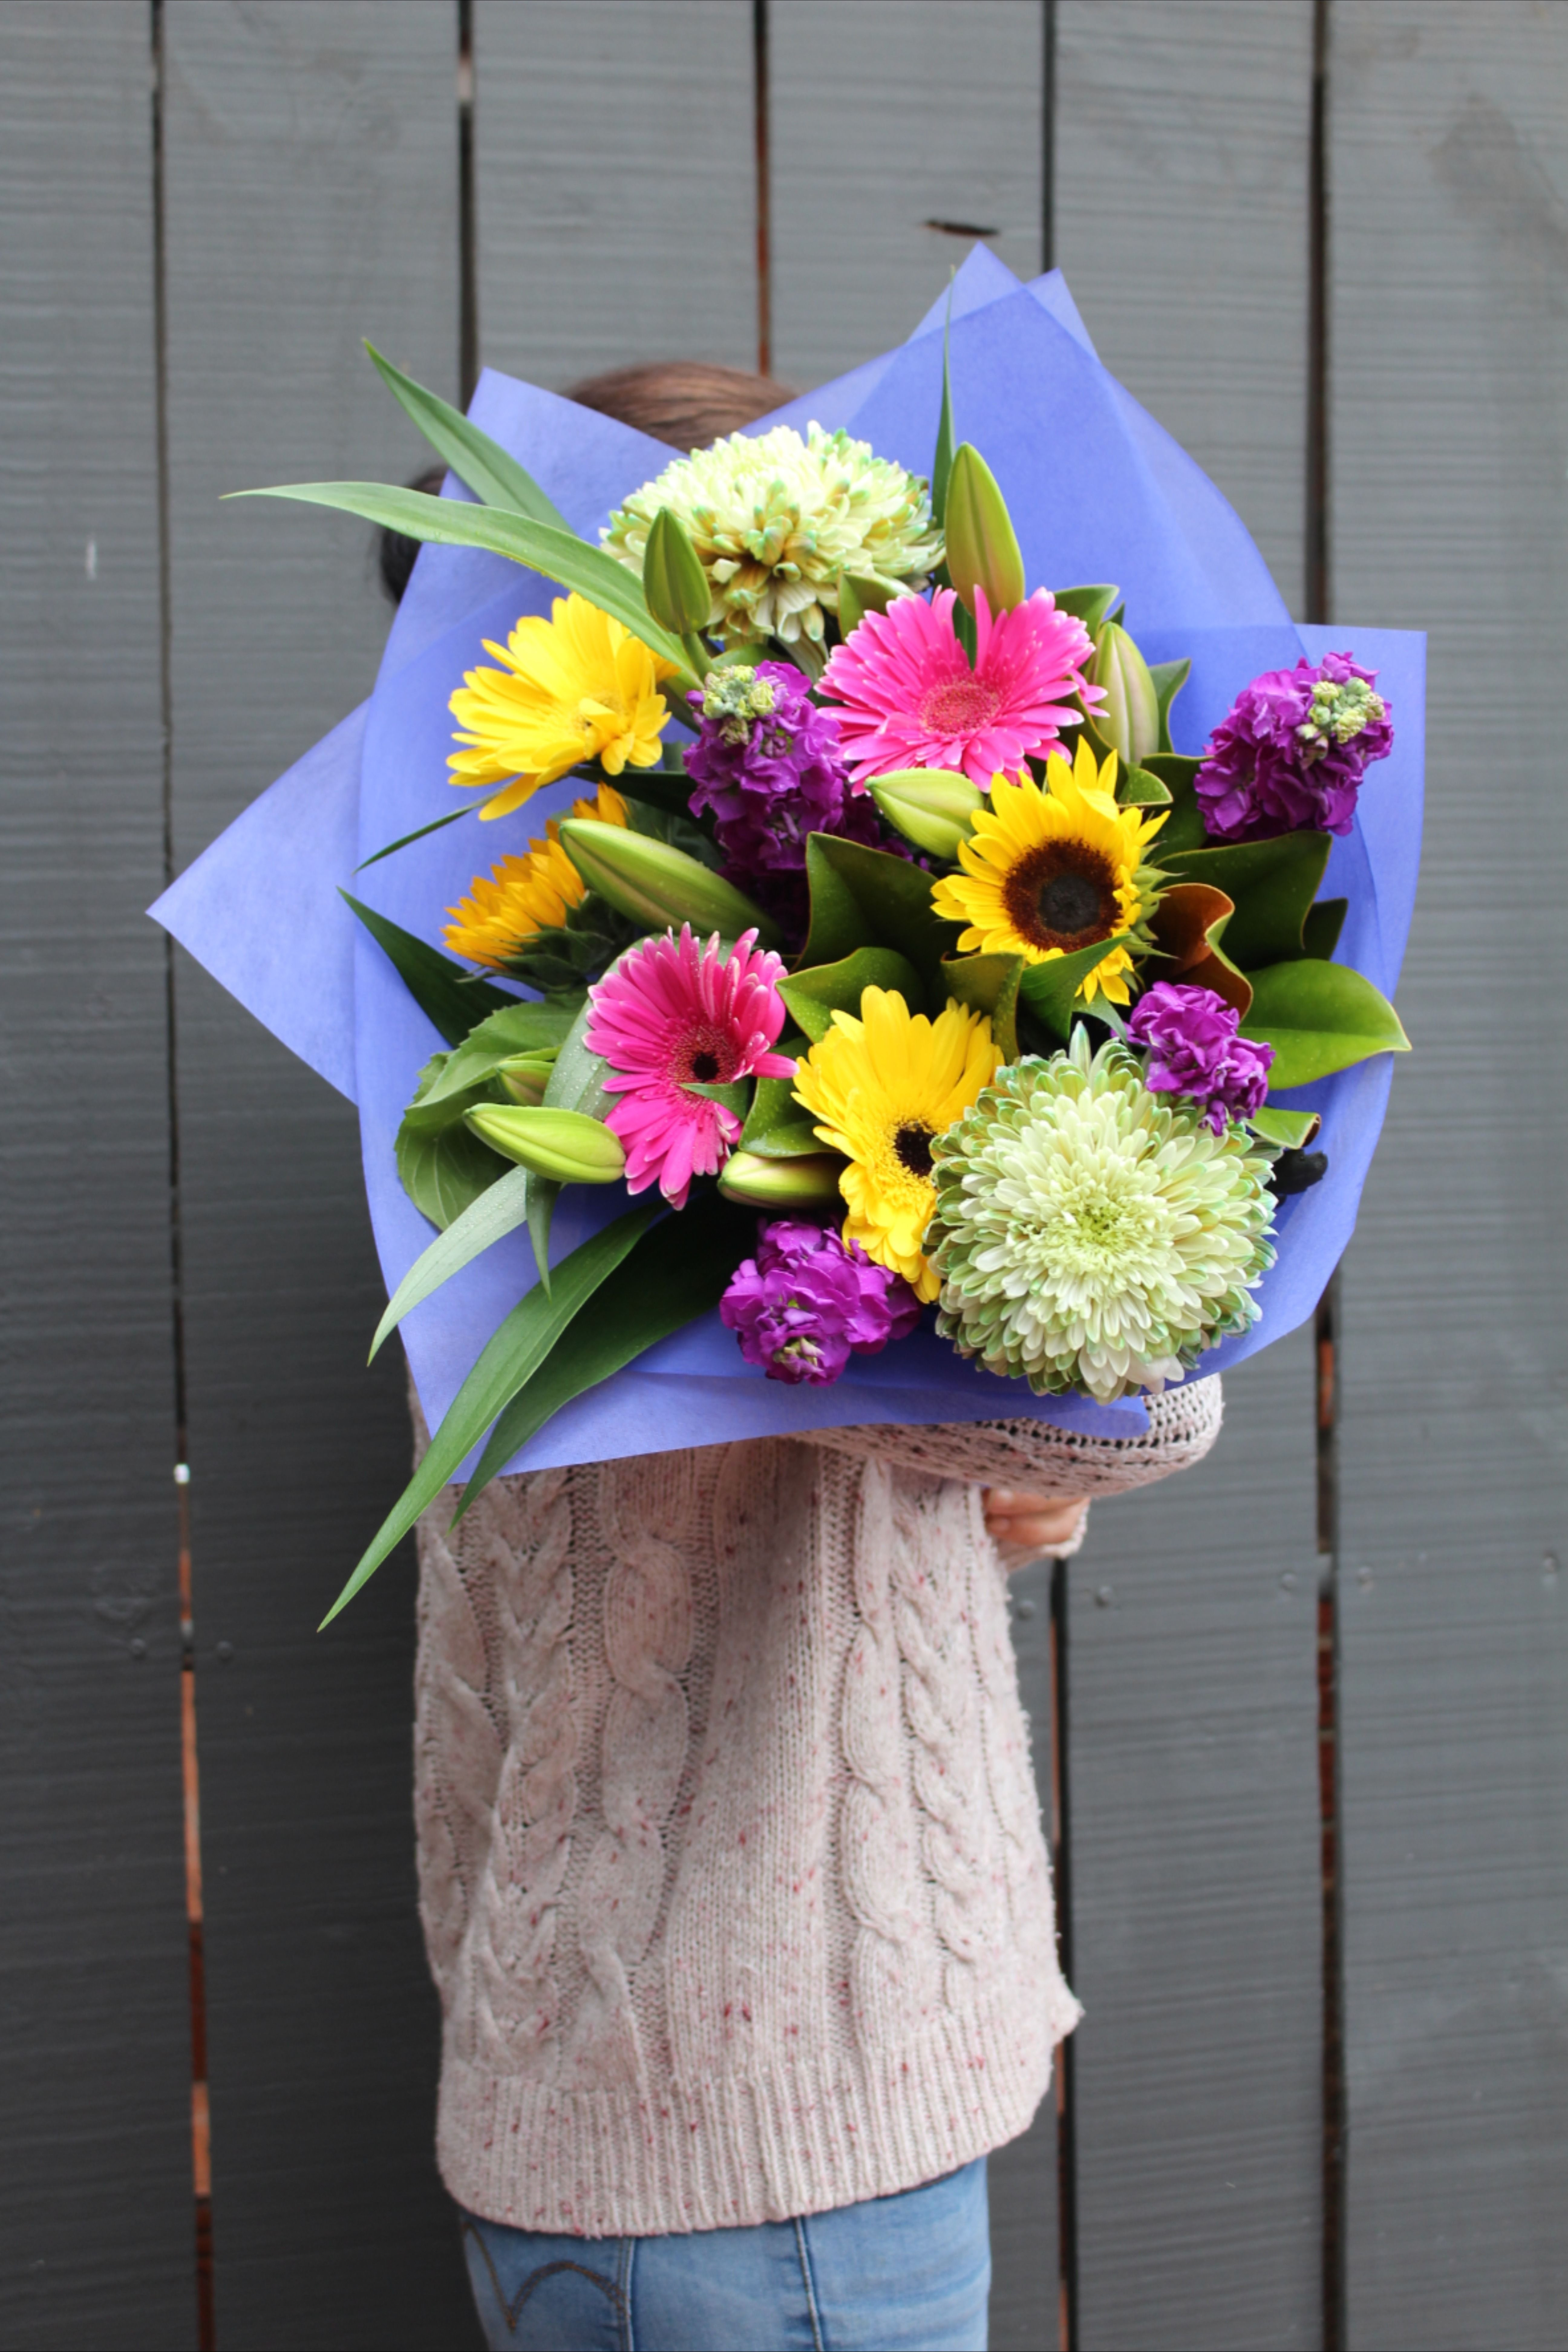 Melbourne Fresh flowers is a best Christmas flowers